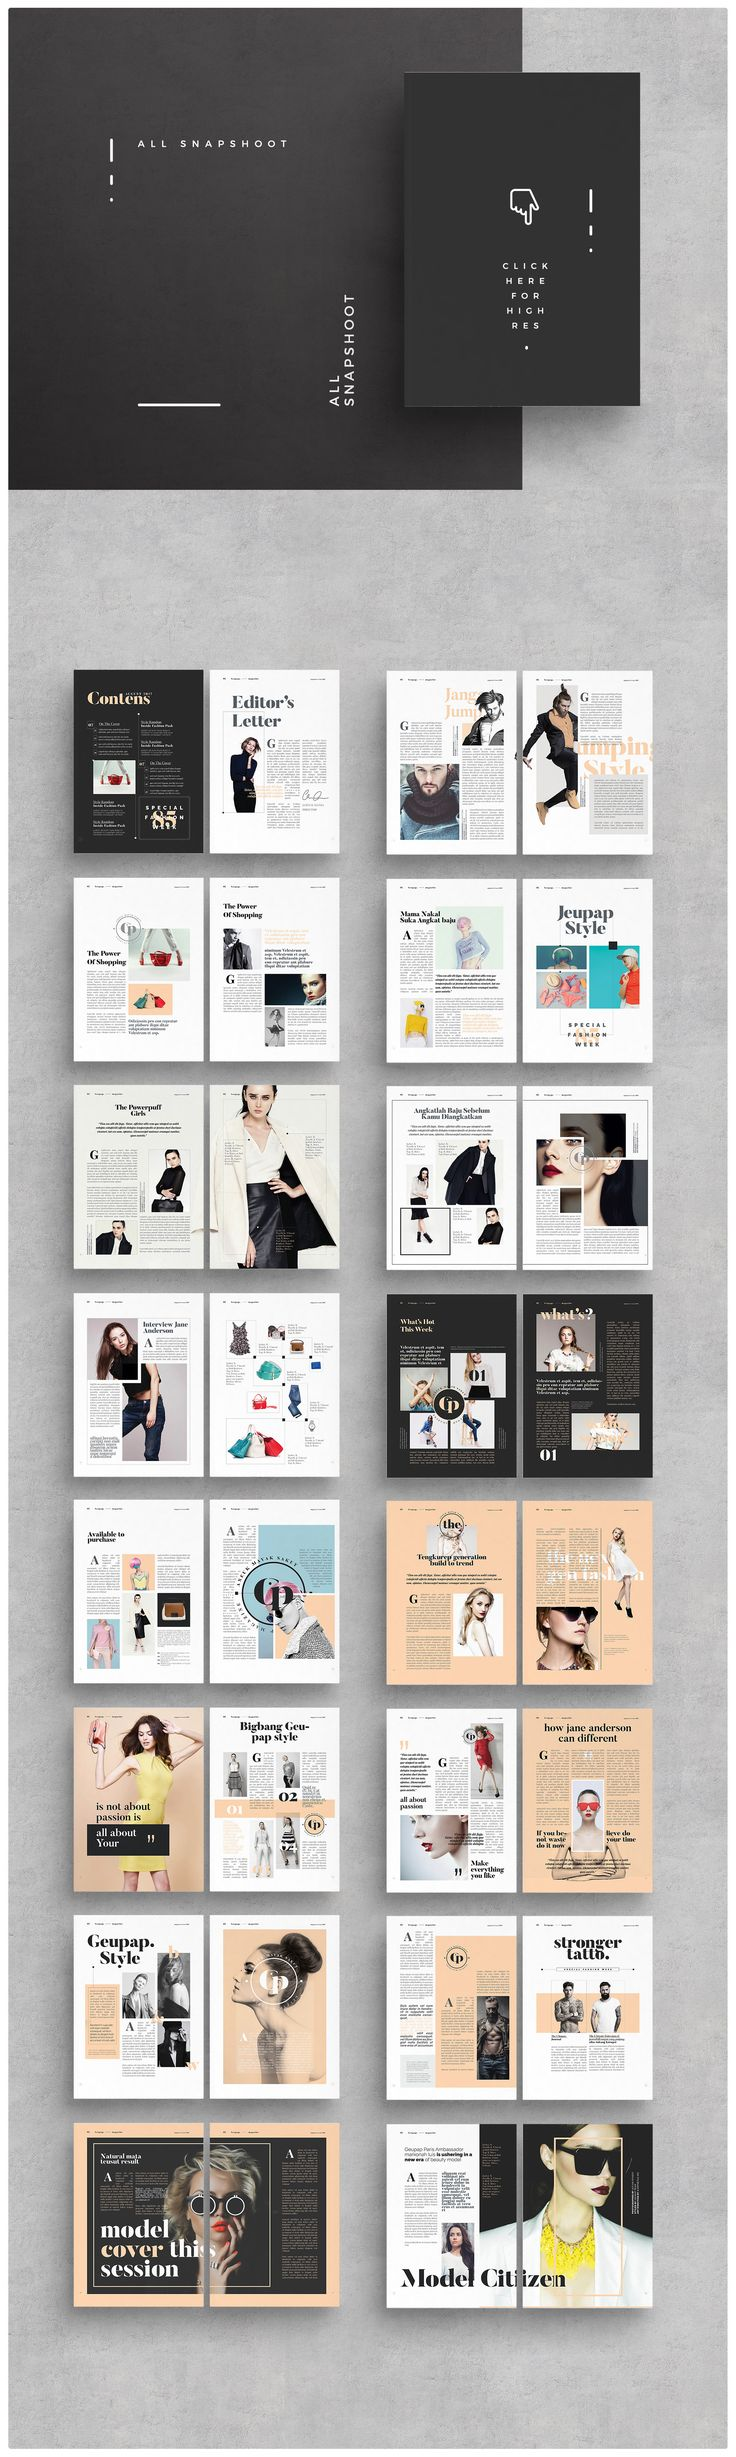 Fabuleux 25+ unique Fashion magazine layouts ideas on Pinterest | Magazine  OW55